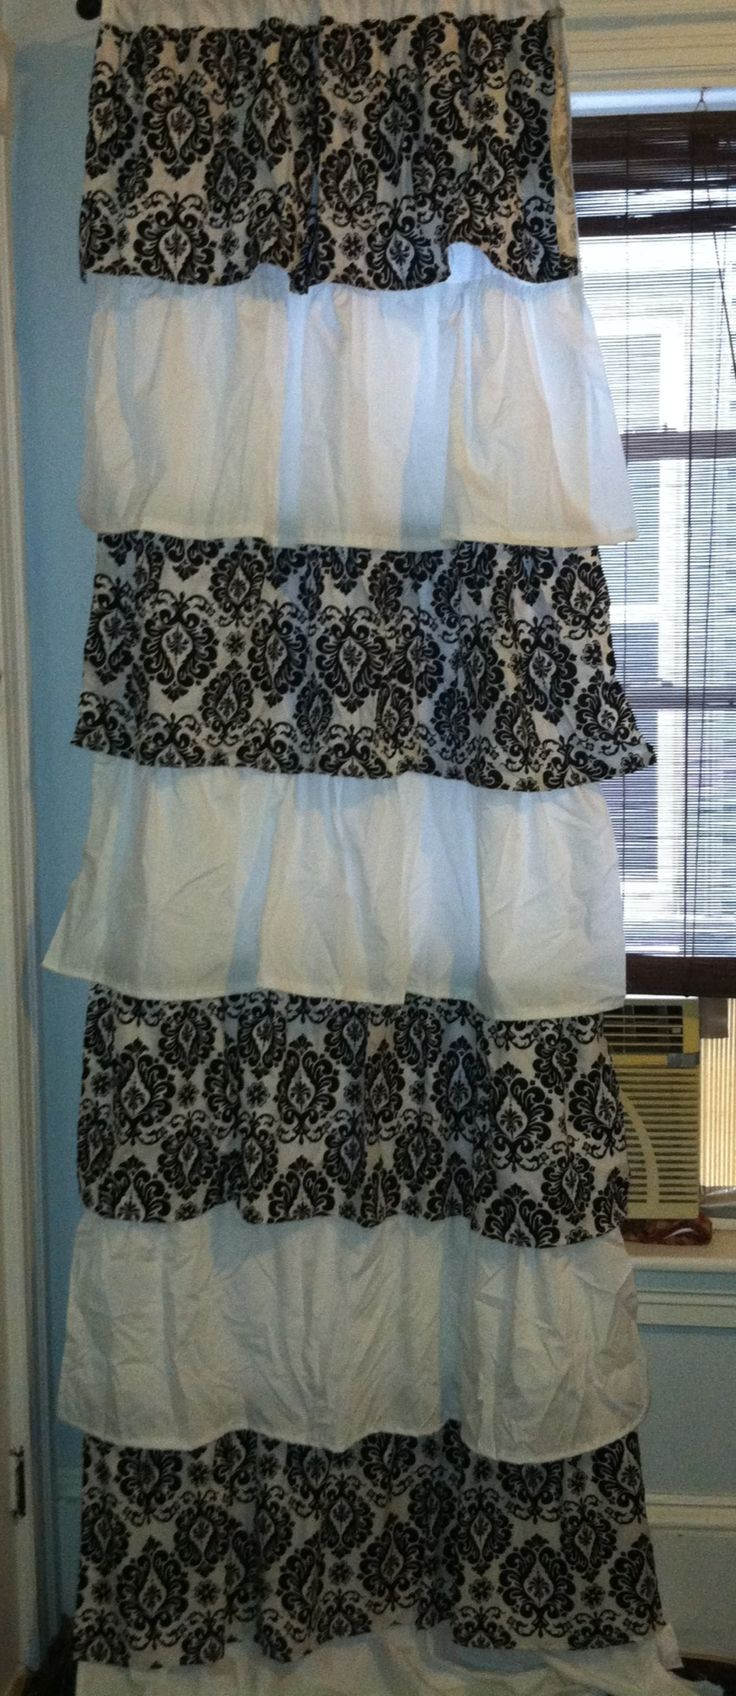 Damask and white ruffled curtains for my Paris theme bedroom